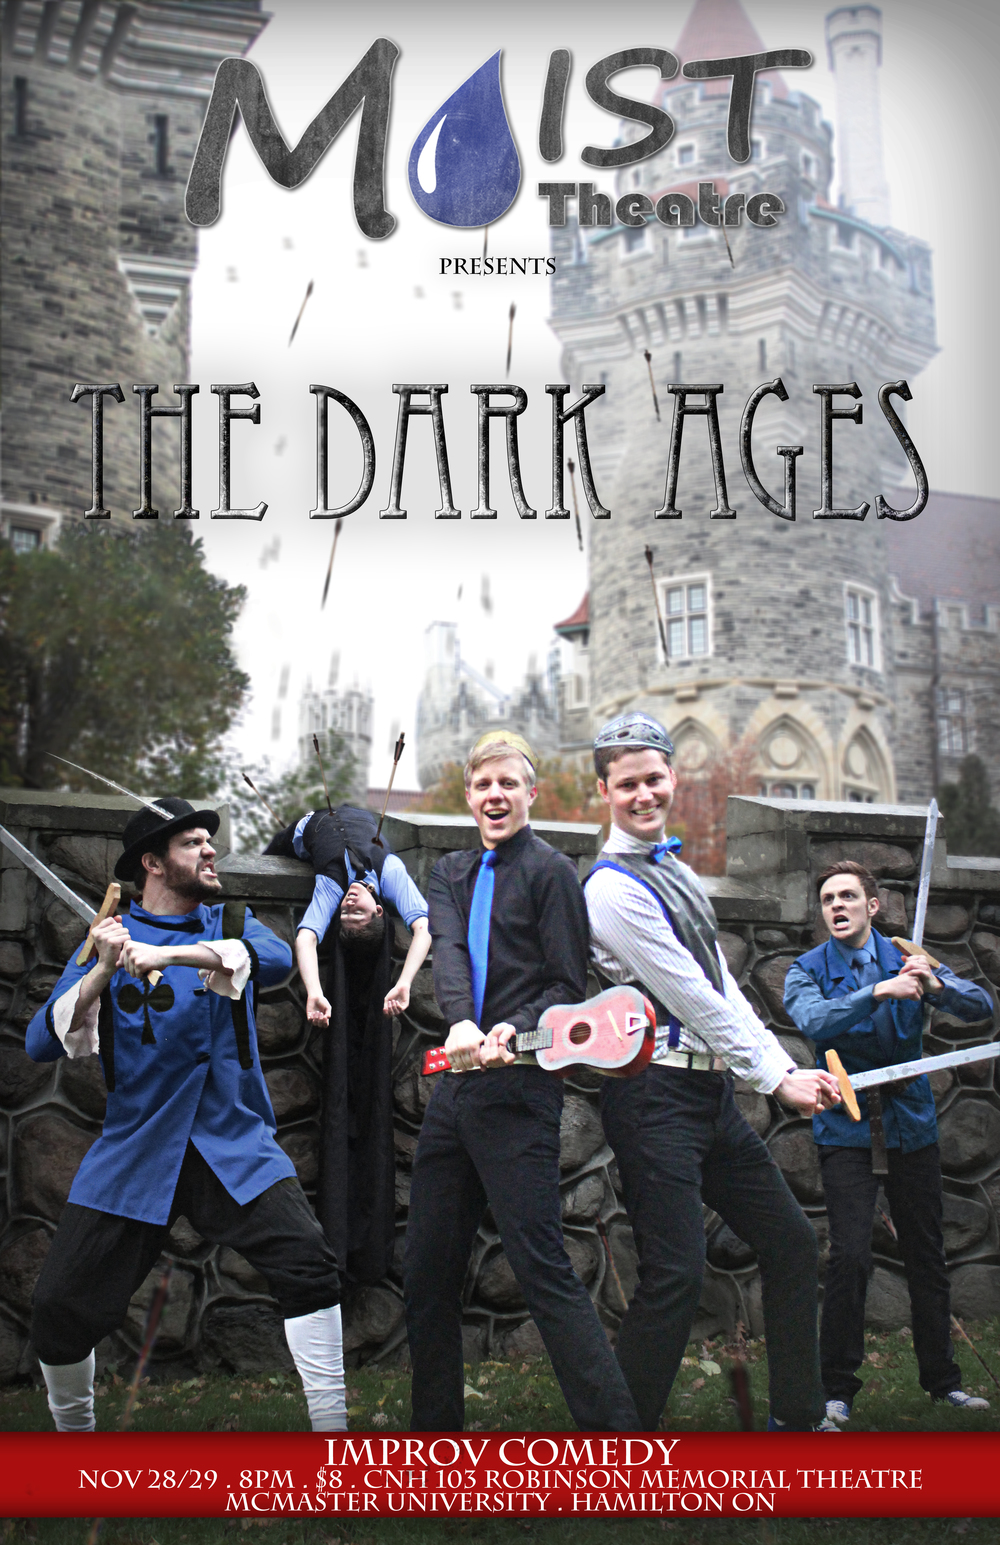 Moist Theatre Presents The Dark Ages Full Poster.jpg